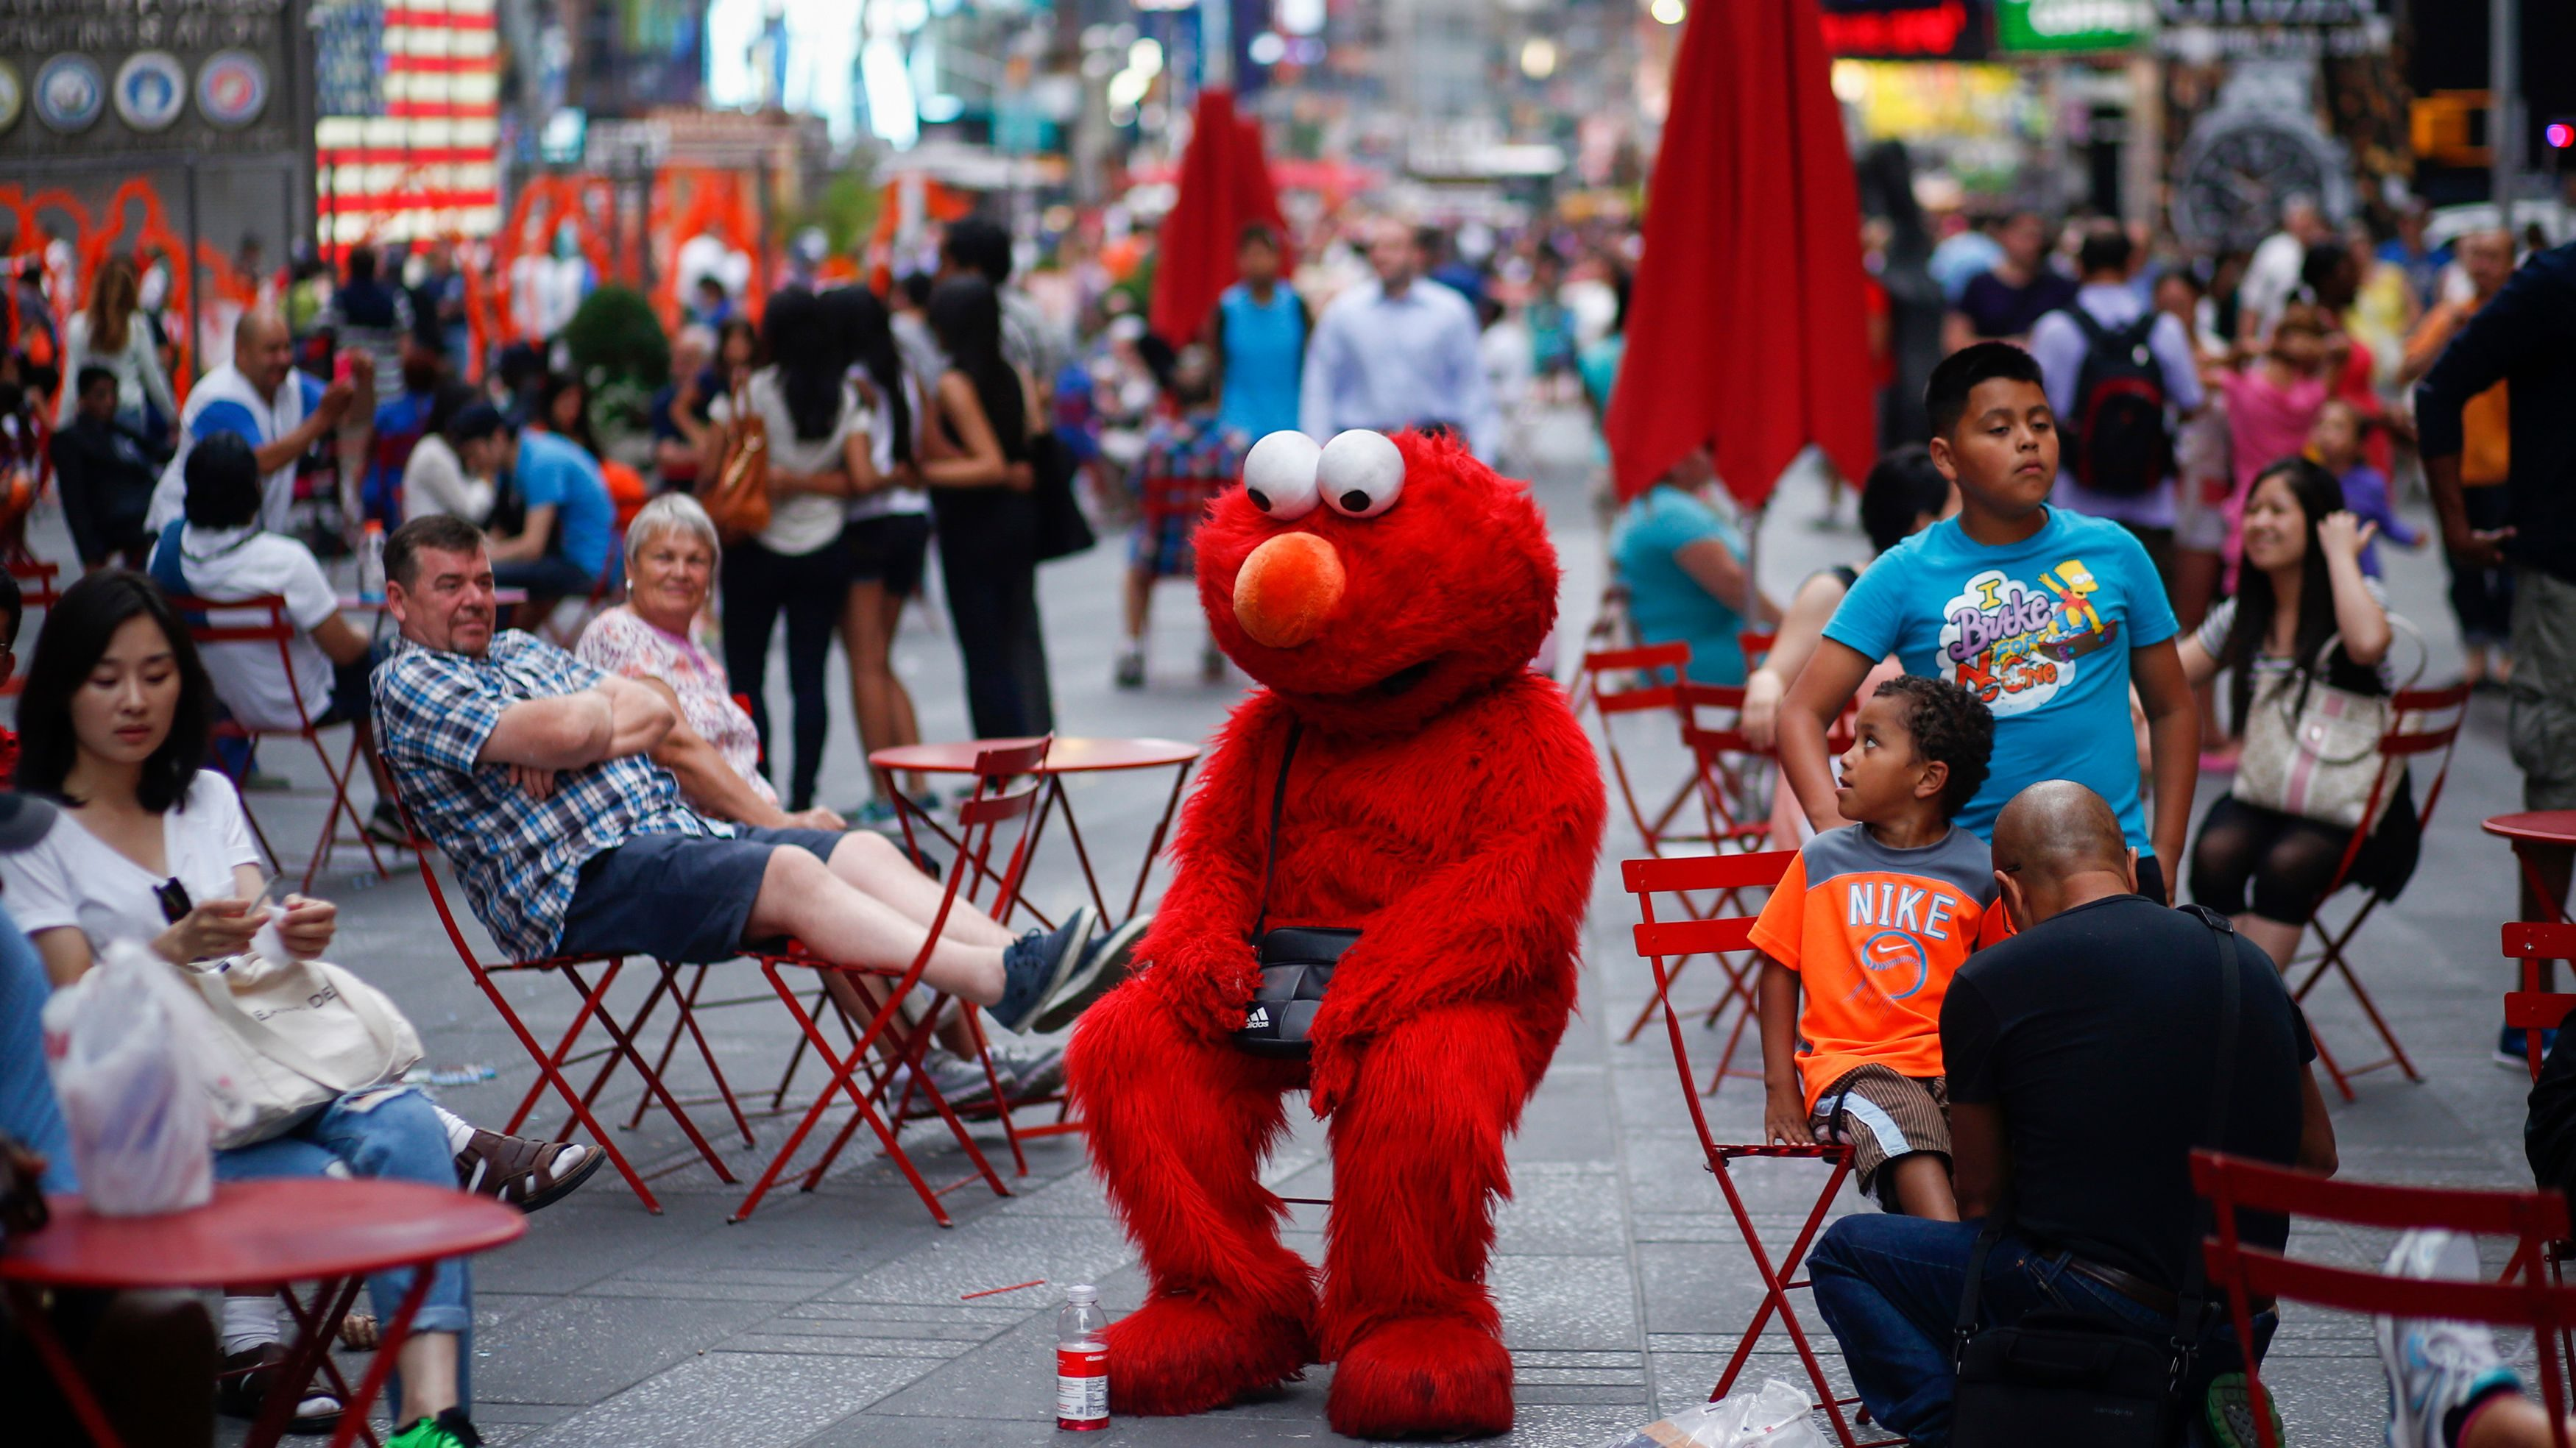 Jorge, an immigrant from Mexico, dressed as the Sesame Street character Elmo rests in Times Square, New York